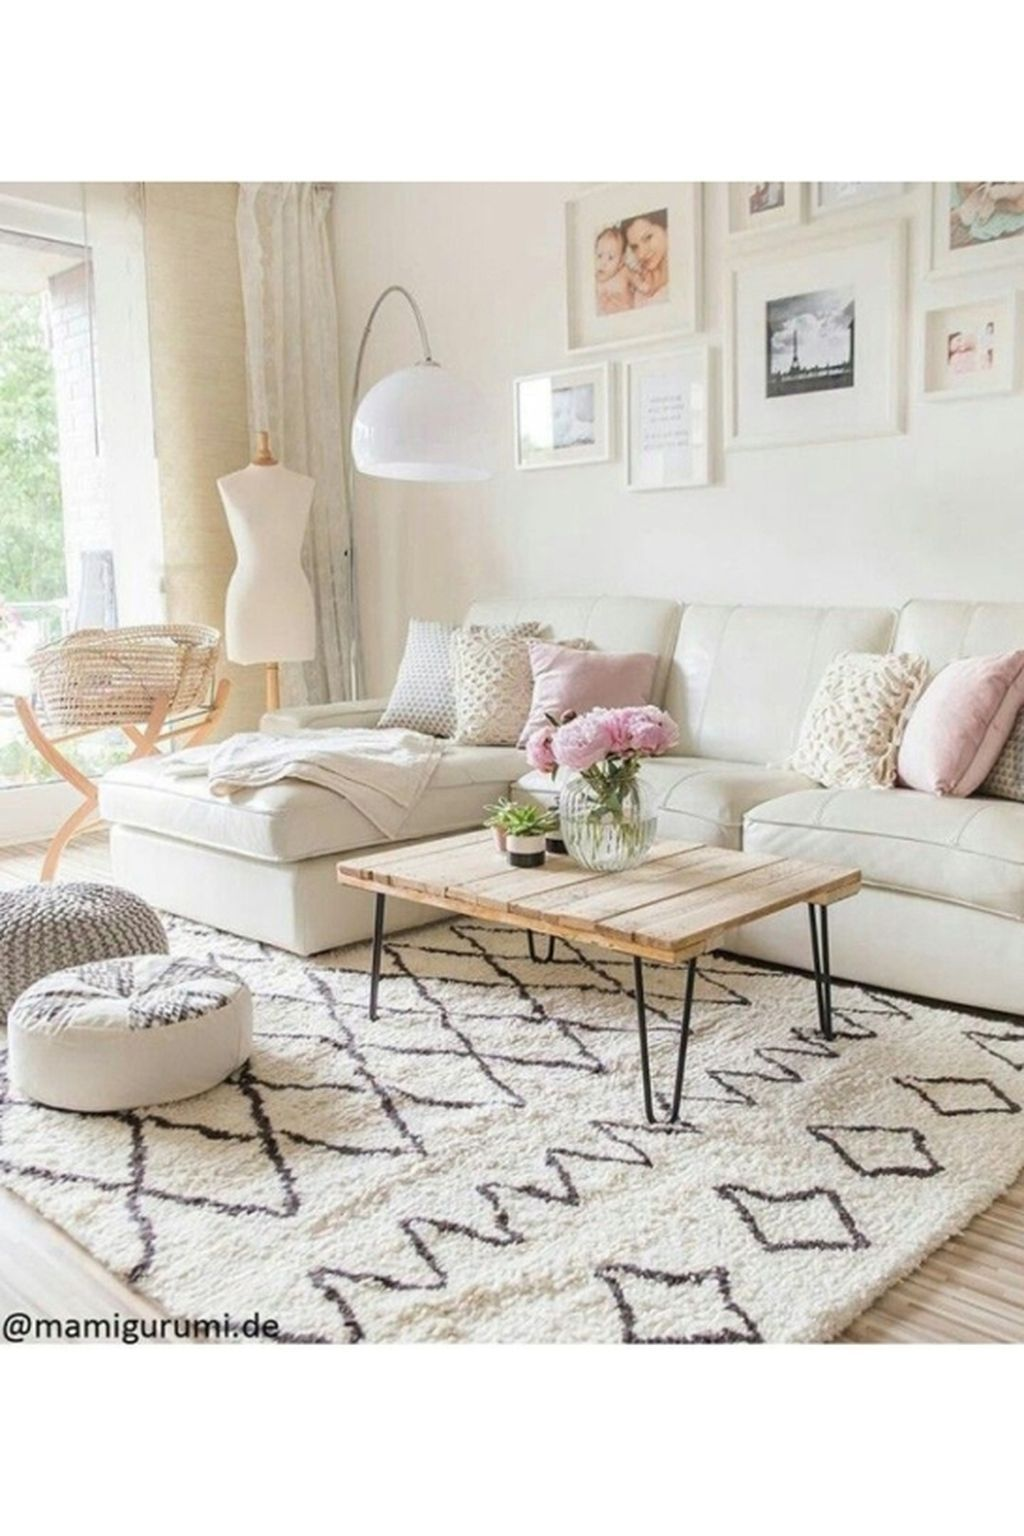 31 Stylish Soft White Couch Design Ideas For Small Living Roo